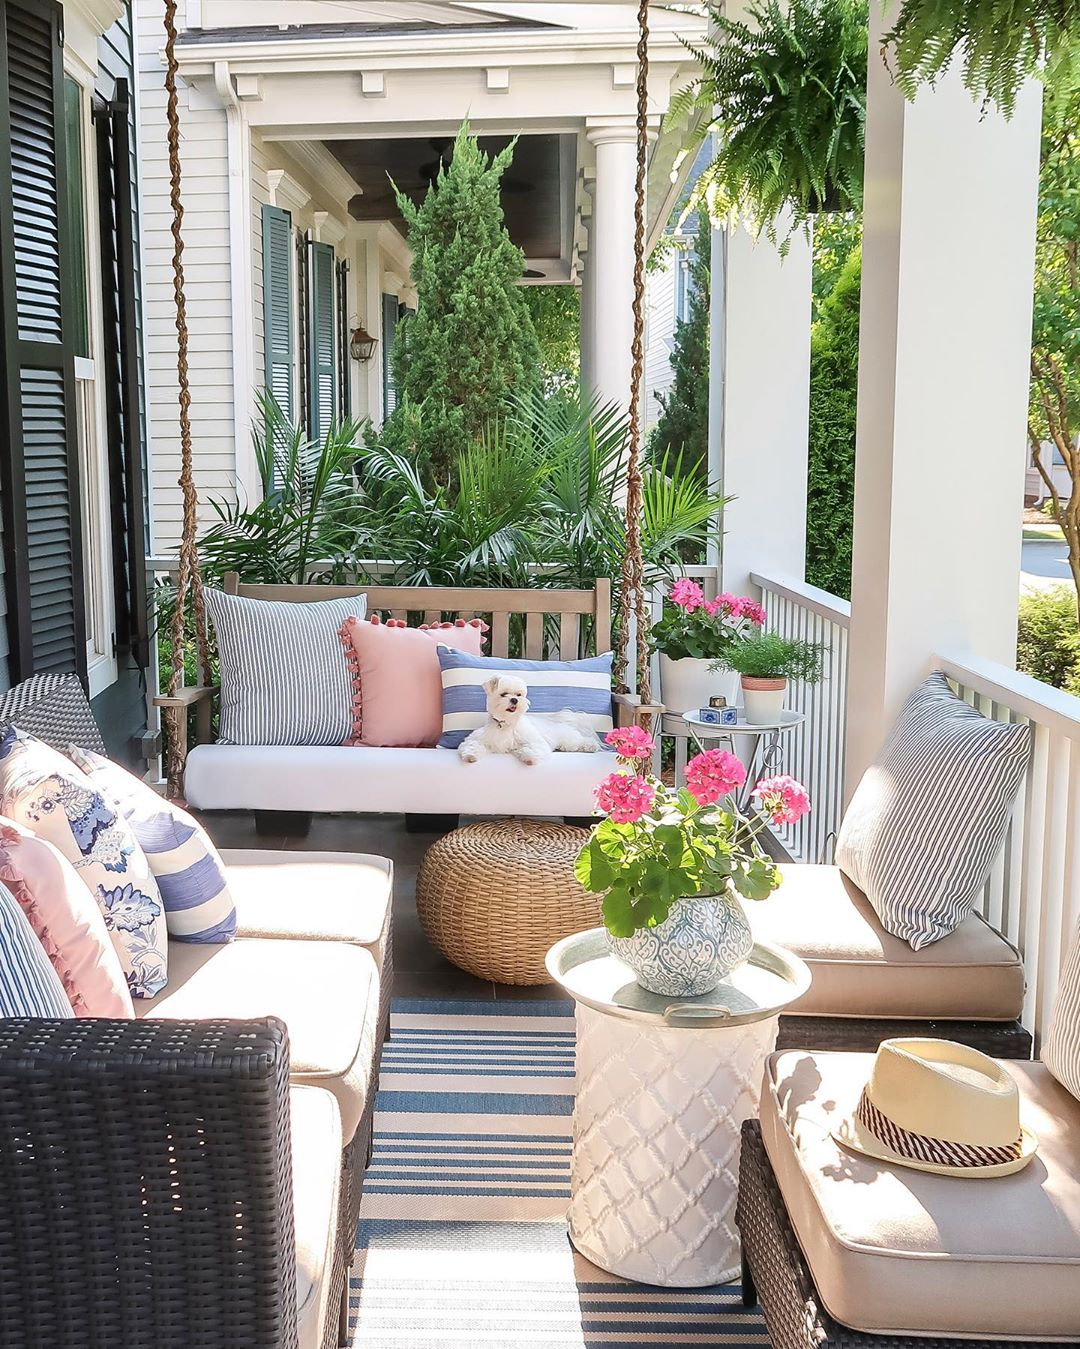 12 Pieces of Outdoor Furniture & Decor to Snag ON SALE